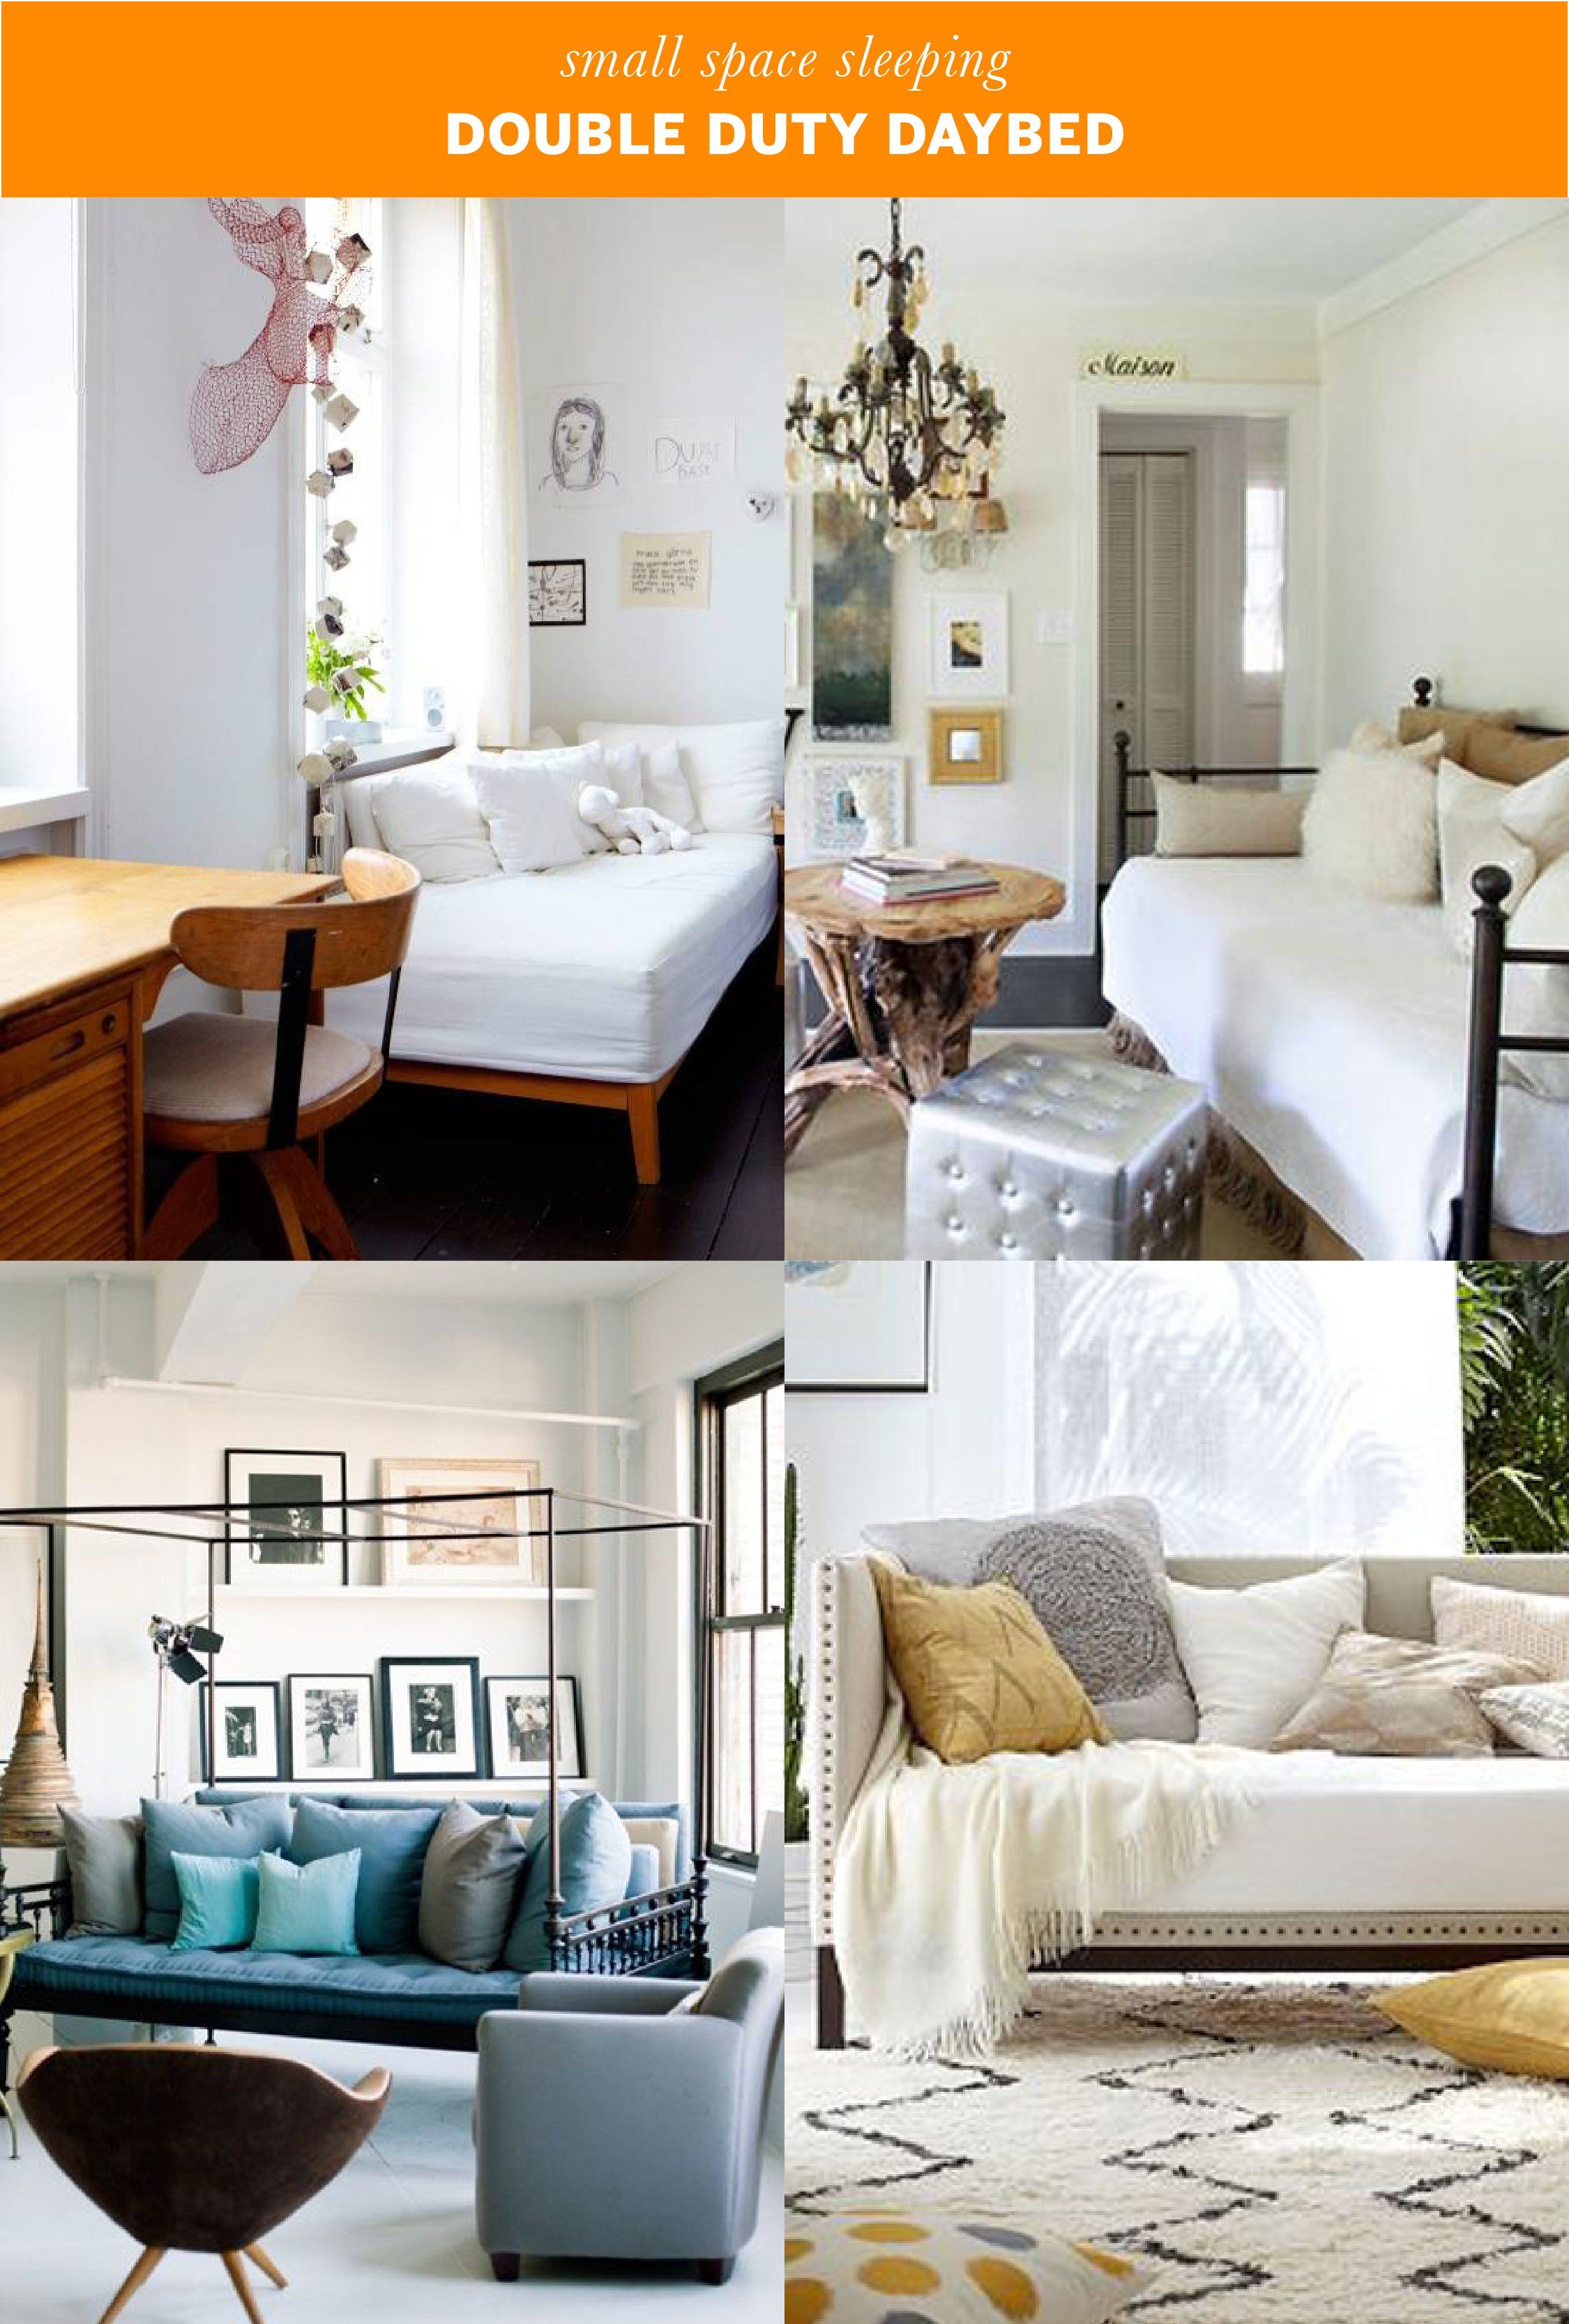 Small Space Sleeping Solutions | Apartment Therapy